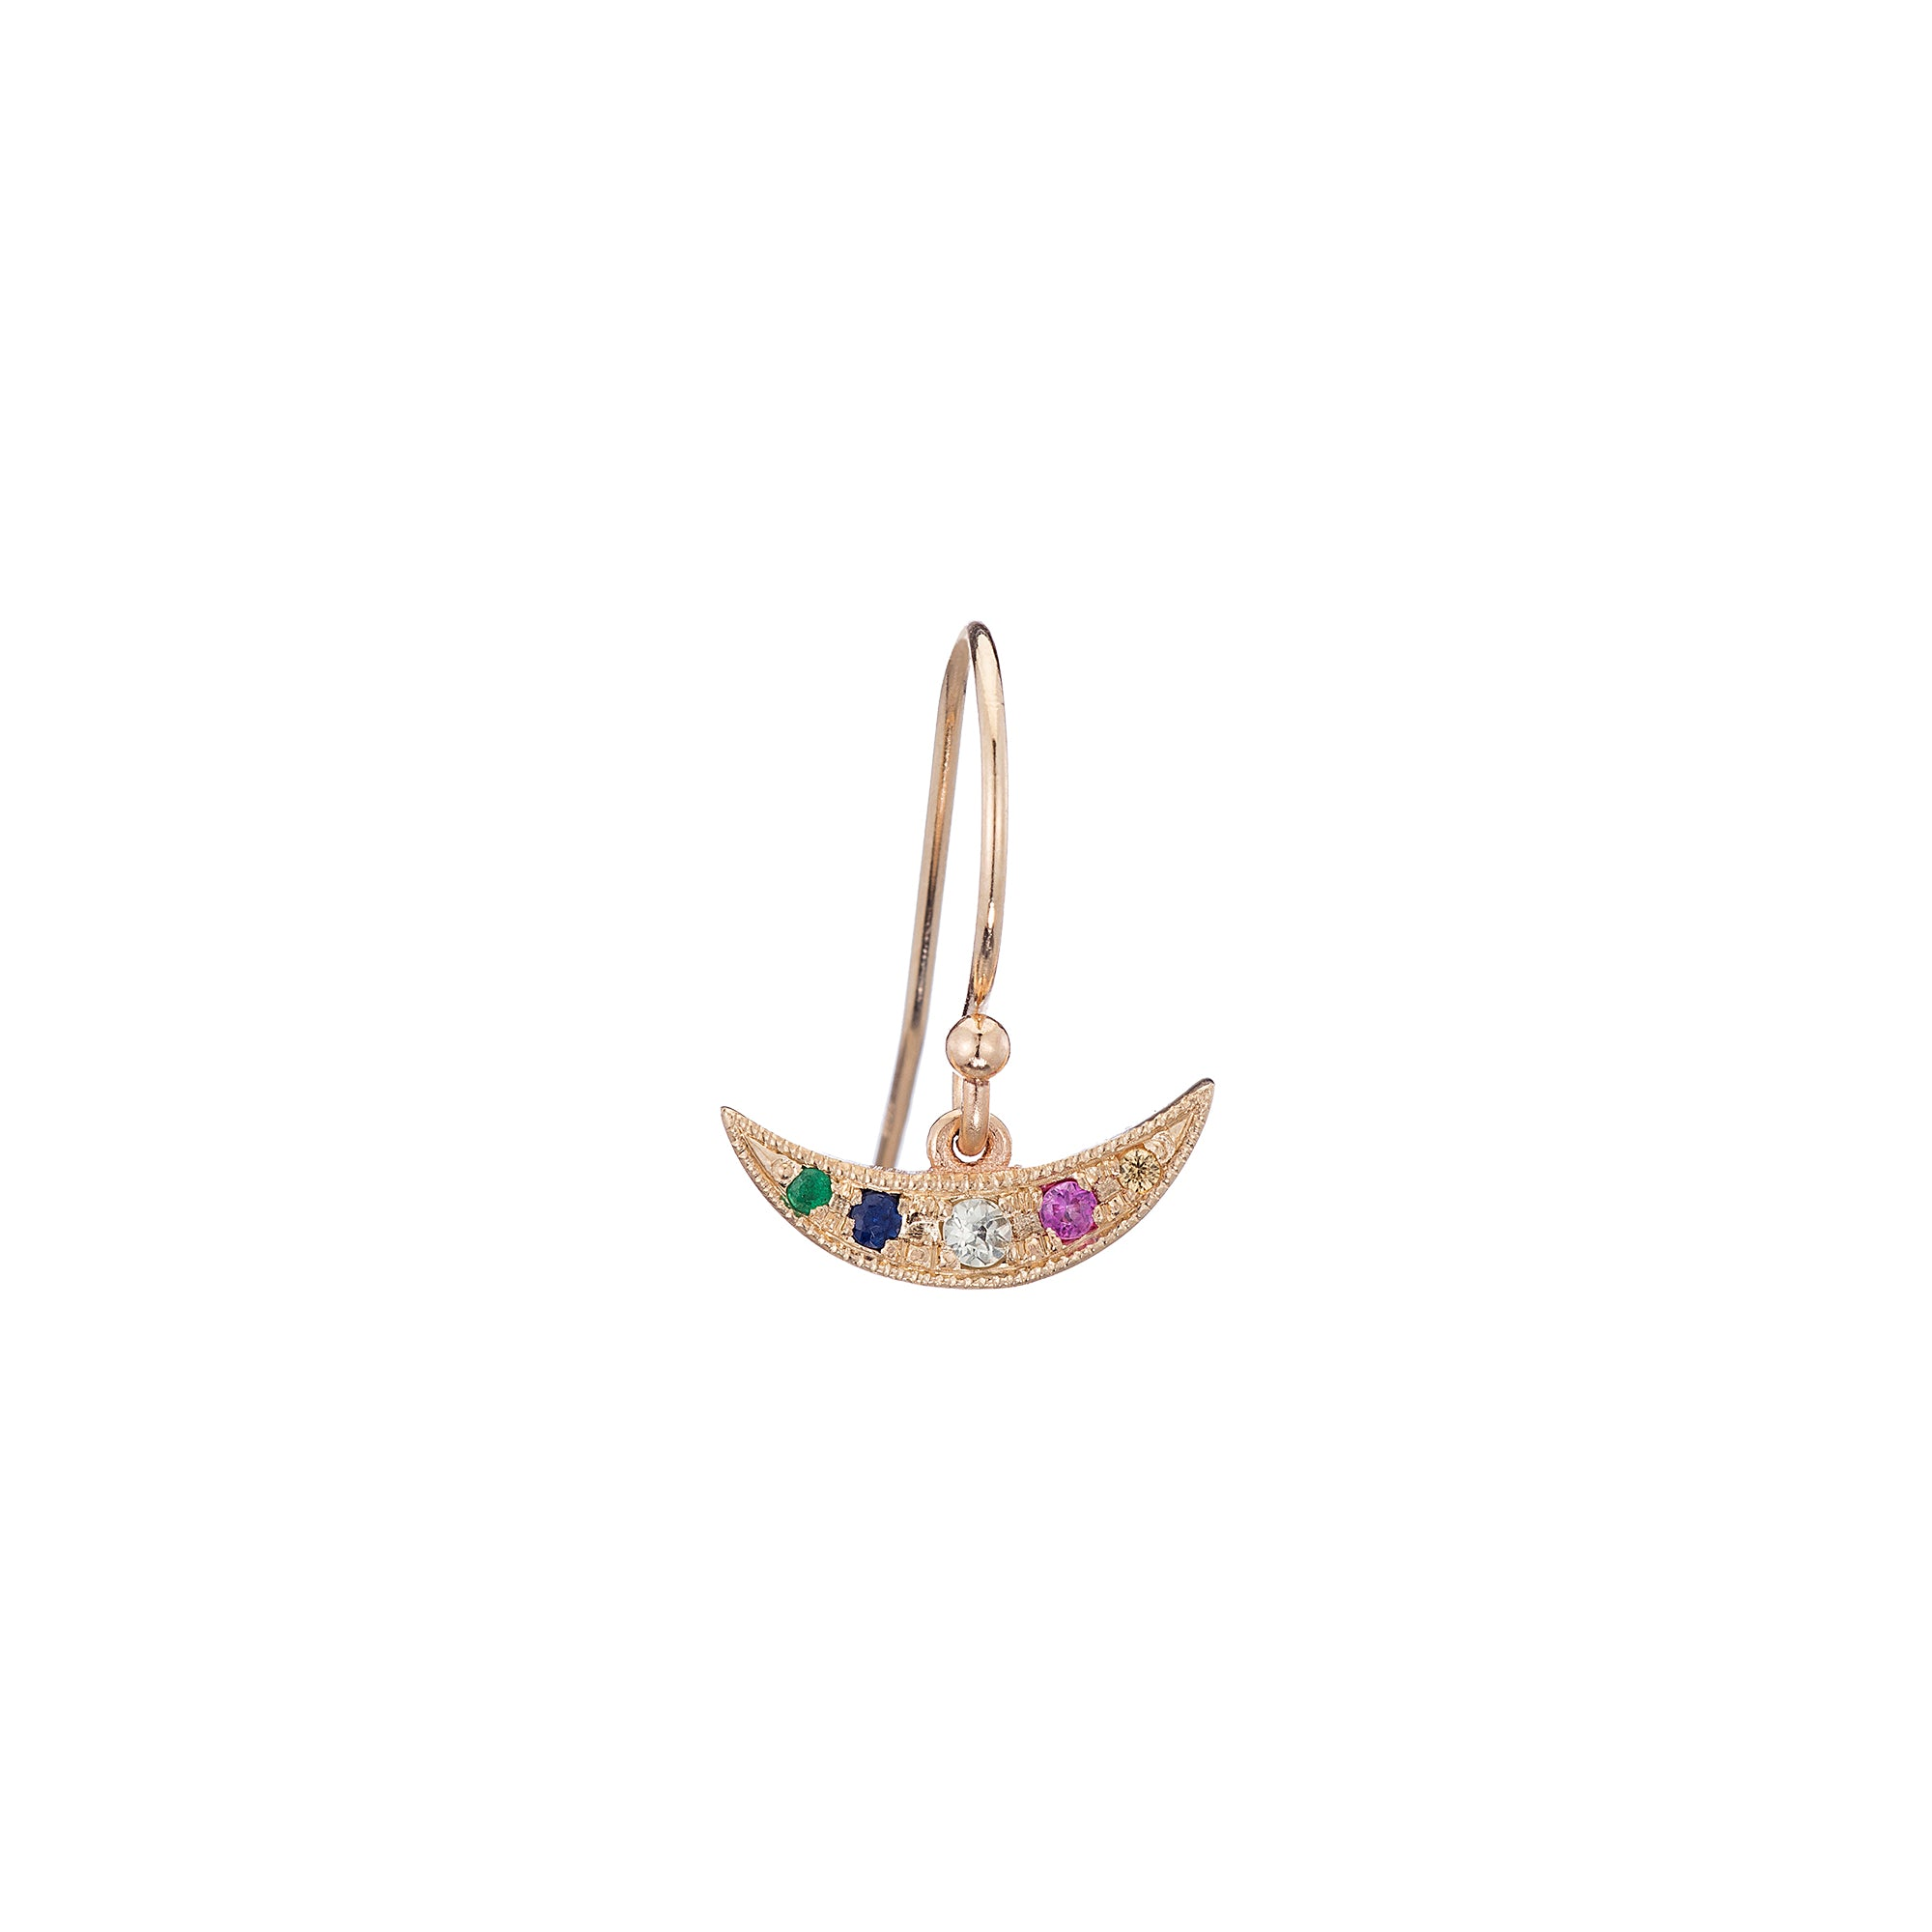 Gold & Rainbow Sapphire Balance Earring by Jennie Kwon for Broken English Jewelry